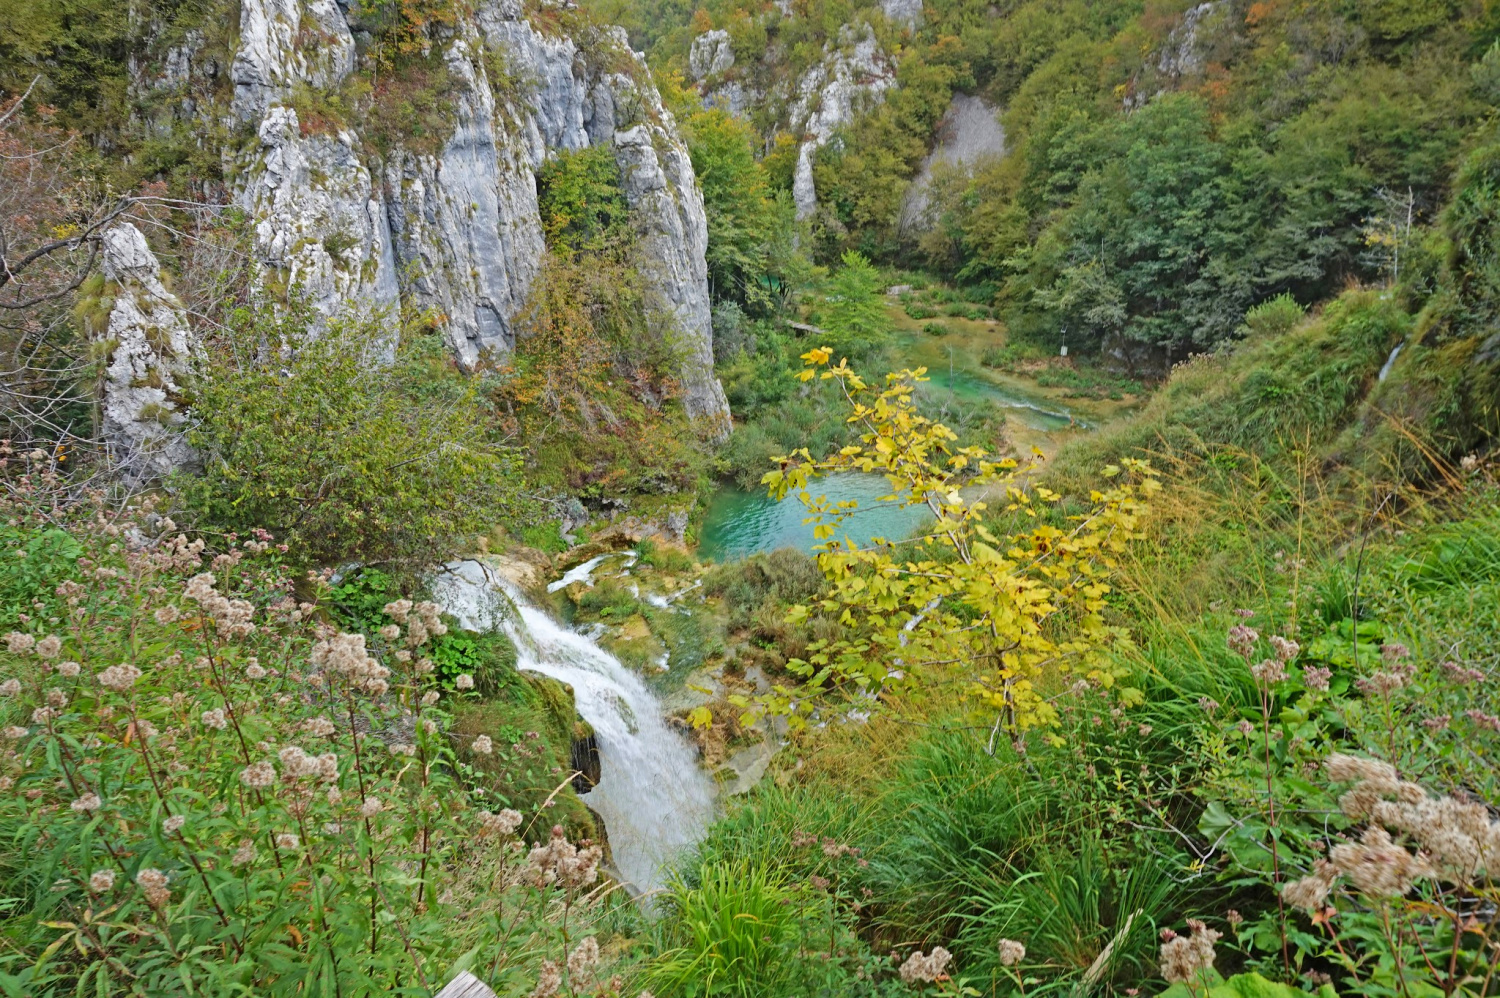 Europe's top natural attraction, Plitvice Lakes, changing into fall colors.